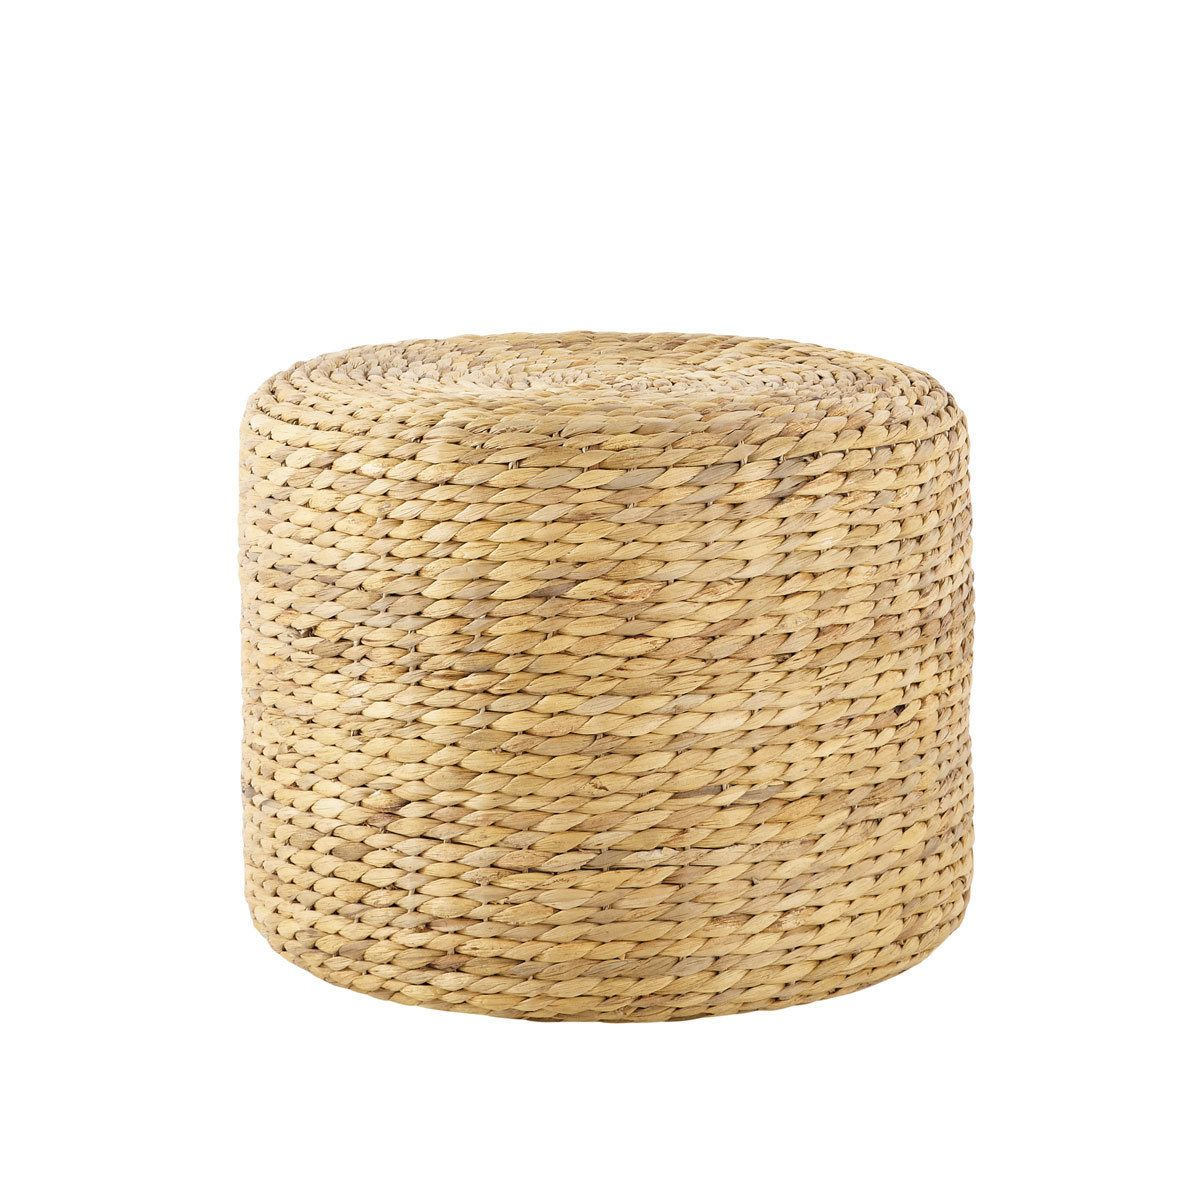 Pouf en jonc de mer tress poufs living rooms and outdoor dining - Rechthoekige lederen pouf ...